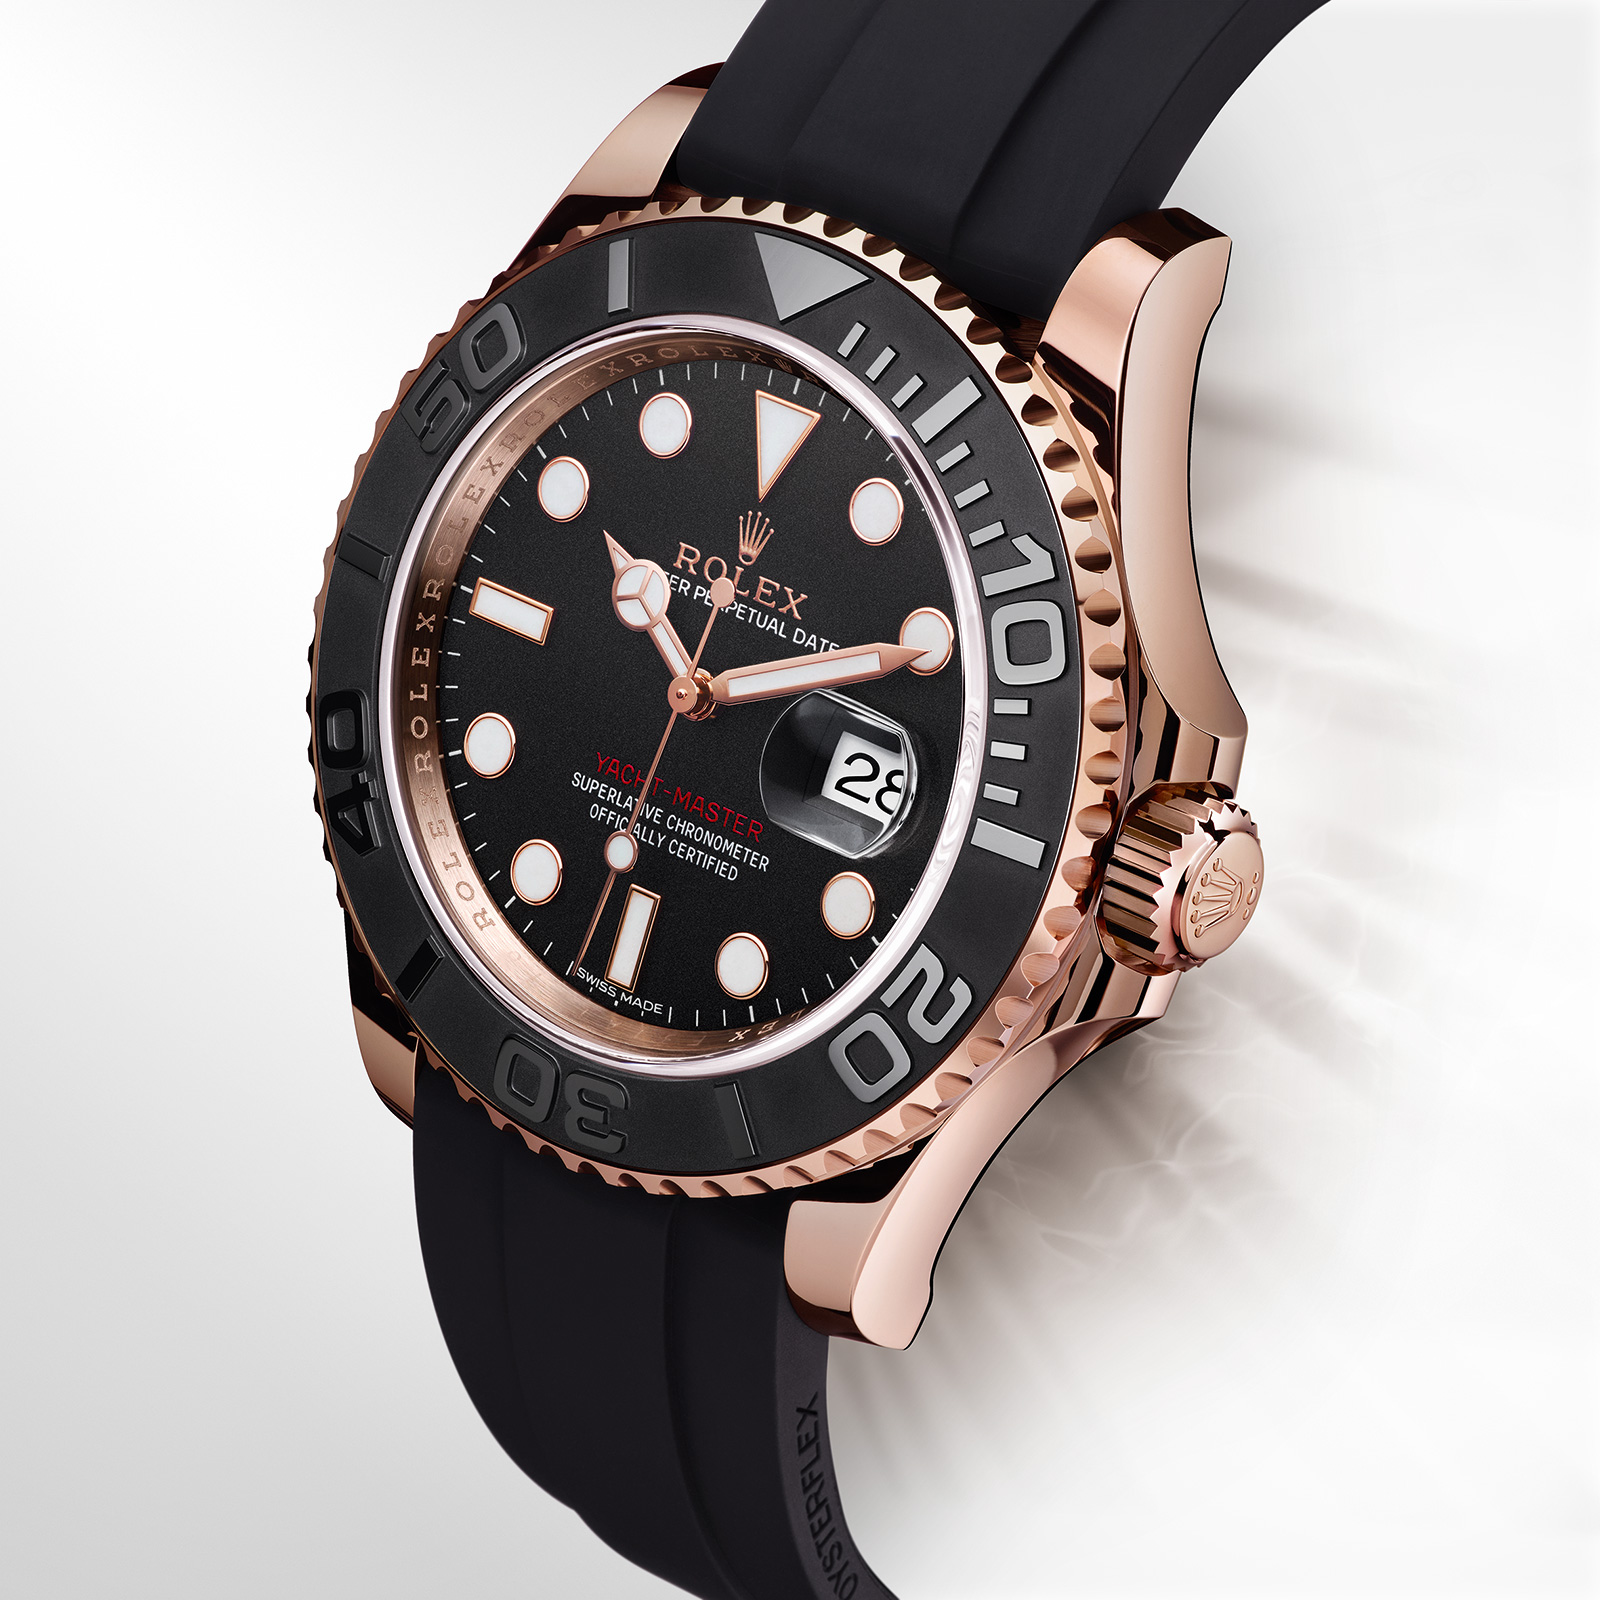 Rolex Rubber Rolex Introduces The Yacht Master Everose With Oysterflex